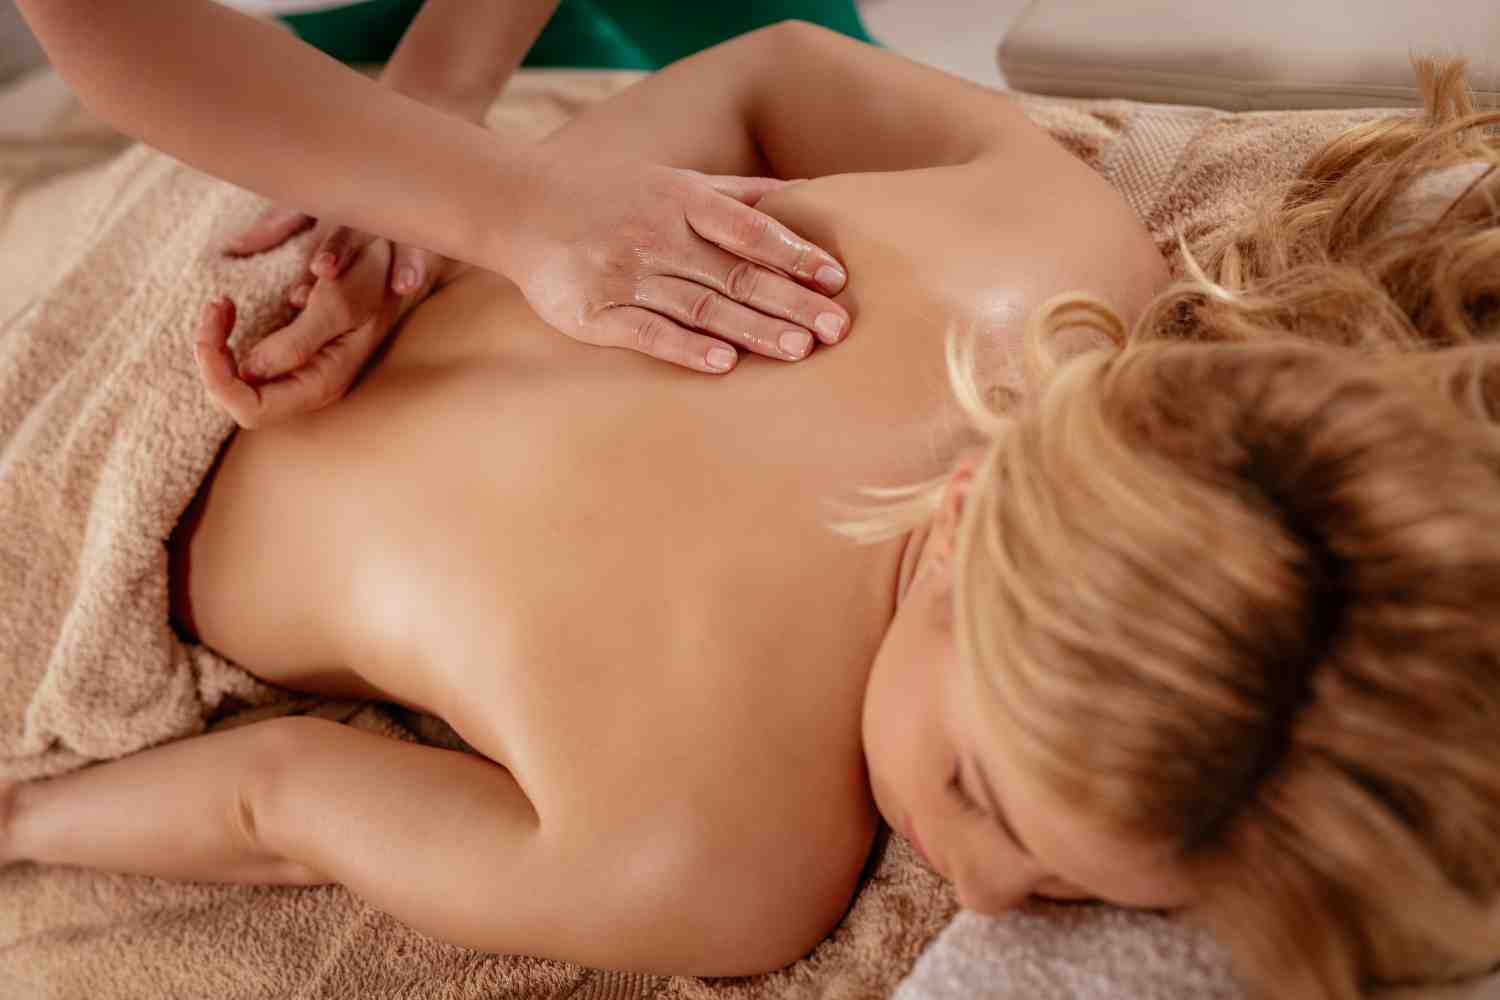 Massage therapist giving deep tissue massage to female